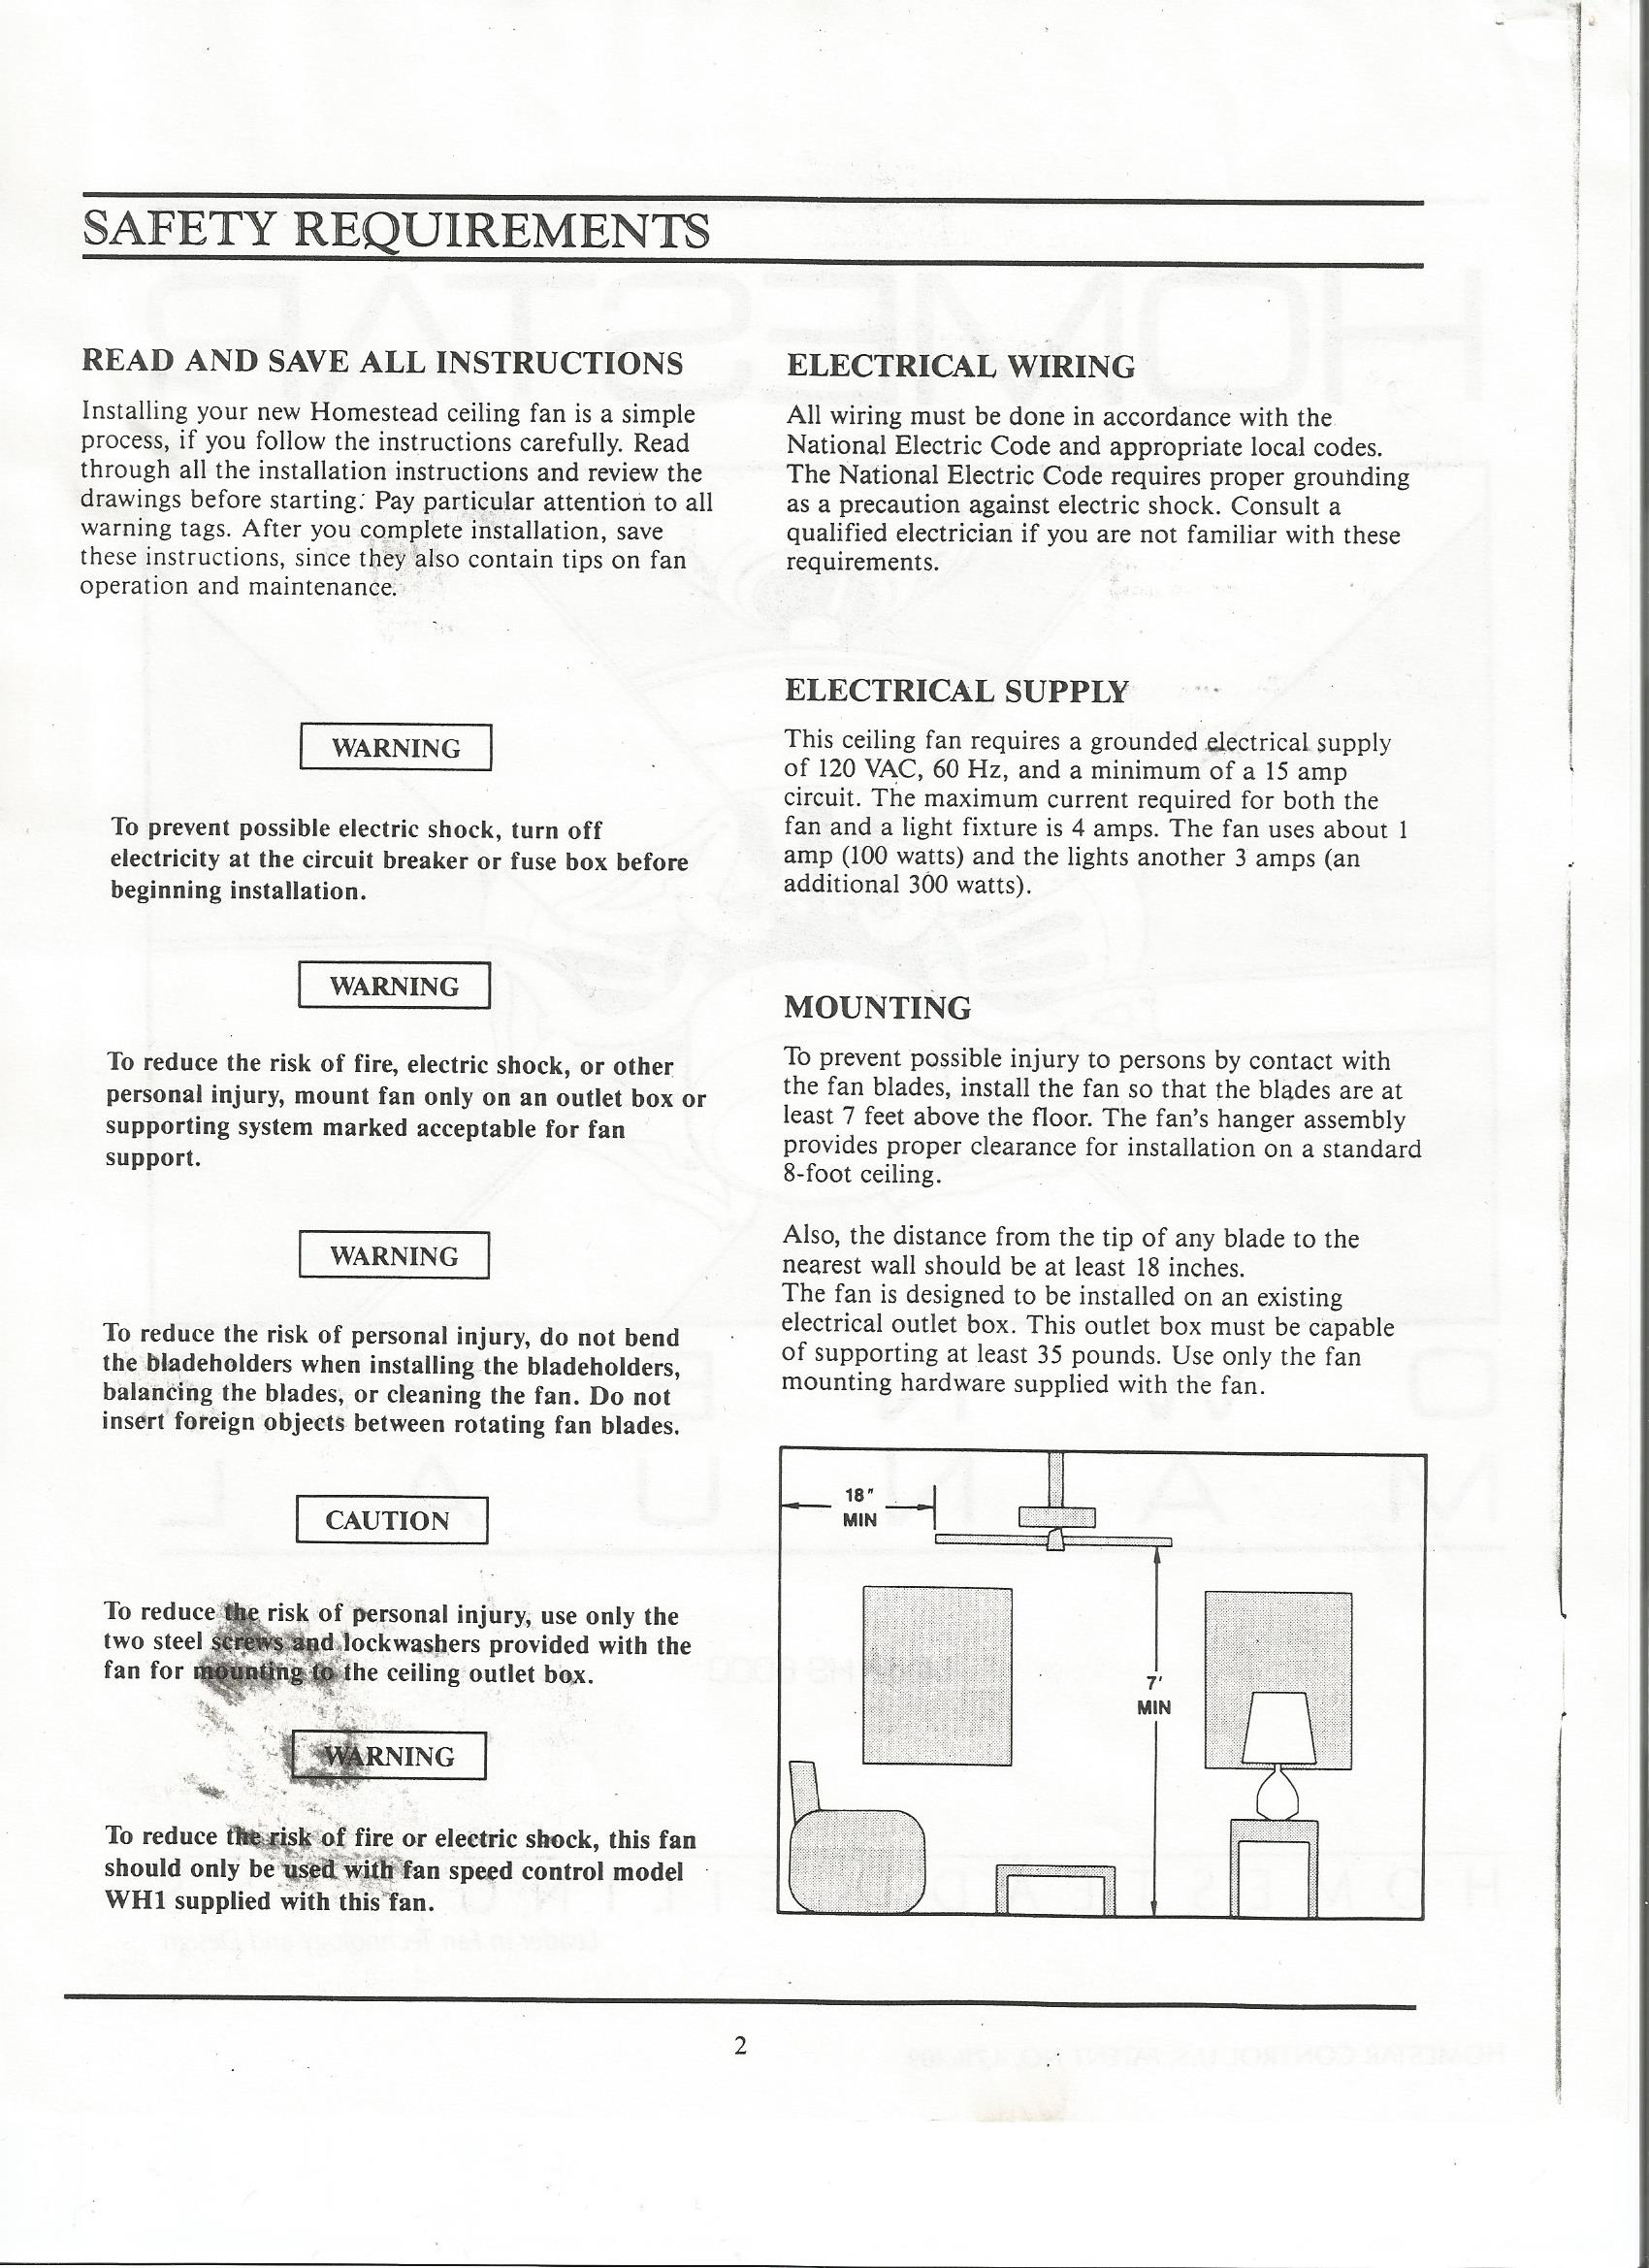 Homestead ceiling fan wiring diagram image collections